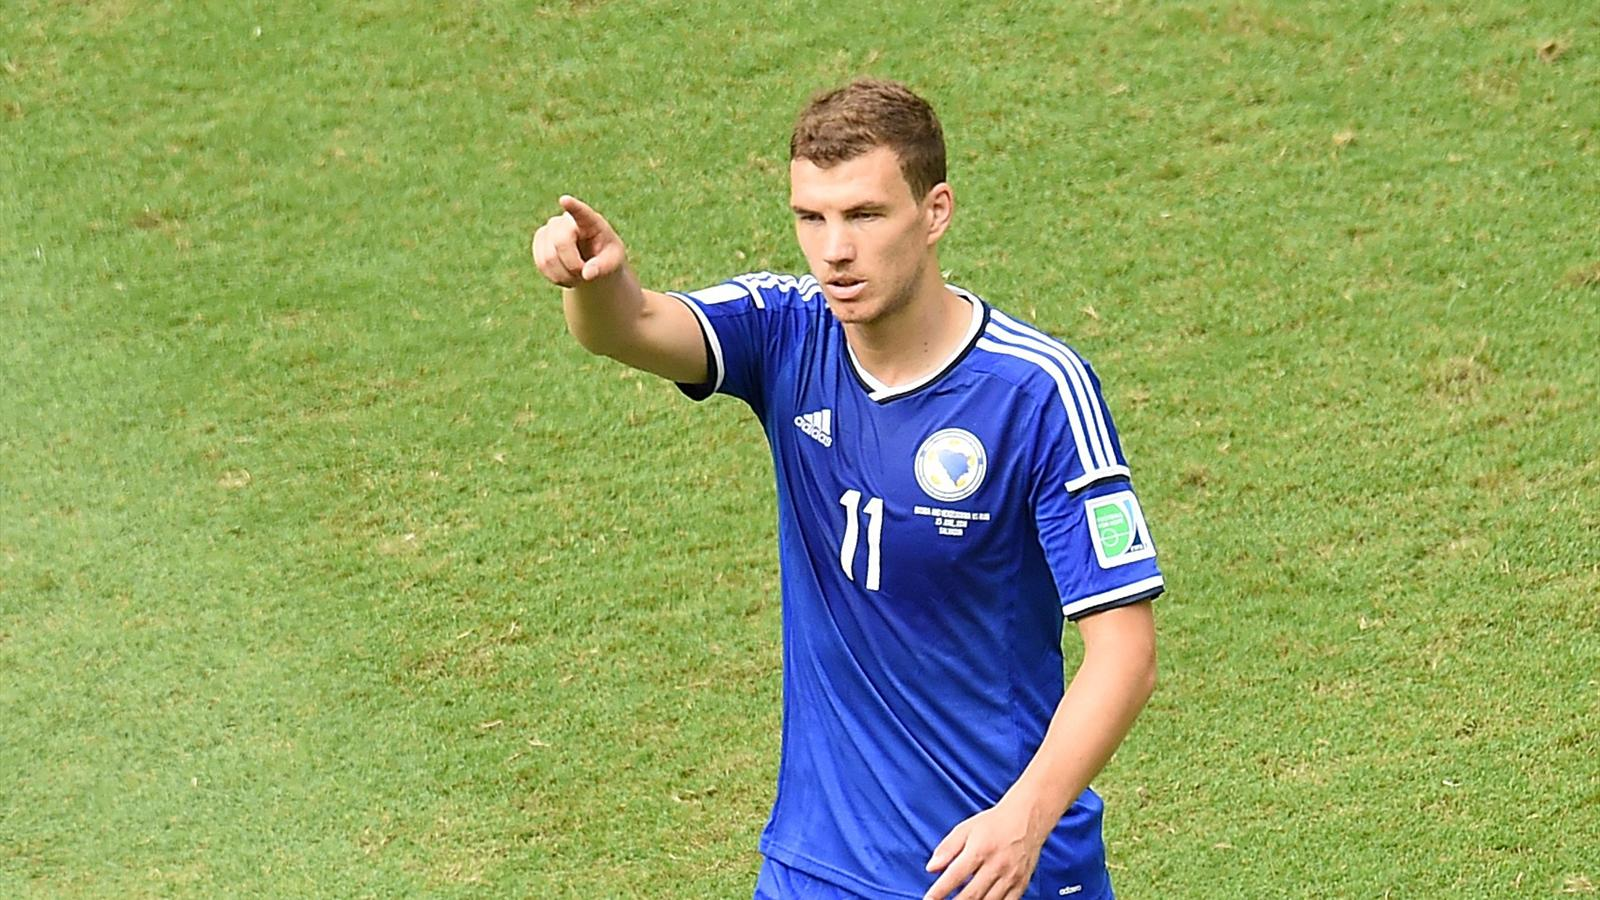 Bosnia-Herzegovina's forward Edin Dzeko gestures after scoring his team's first goal during a Group F football match between Bosnia-Hercegovina and Iran at the Fonte Nova Arena in Salvador during the 2014 FIFA World Cup on June 25, 2014 (AFP)